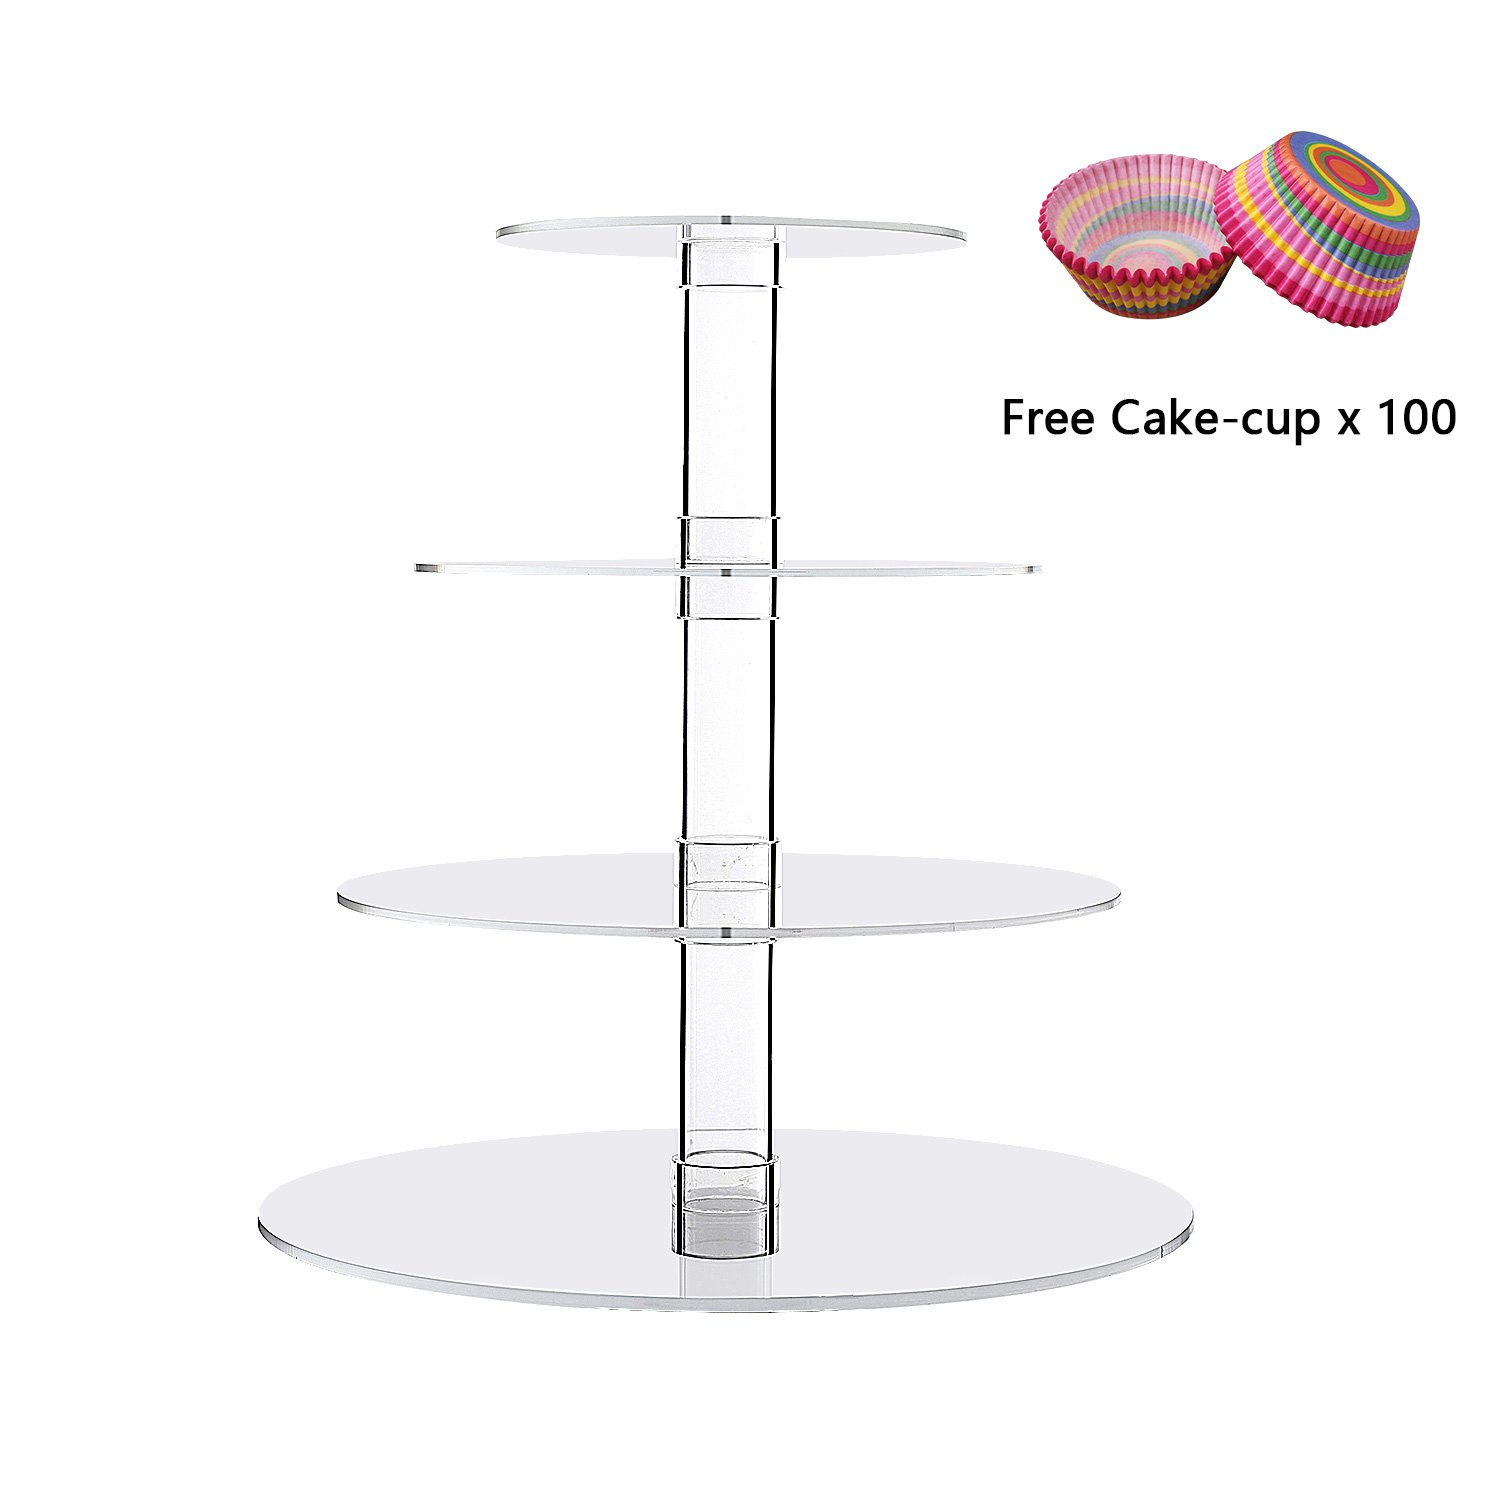 Cupcake Stands Clear Round Dessert Holders Stacked 4 Tiers Wedding Acrylic Tiered Cake Tower Party Tree Serving Tray Cupcake Display Serving Platter for Weddings, Pastries, Birthday, Graduation